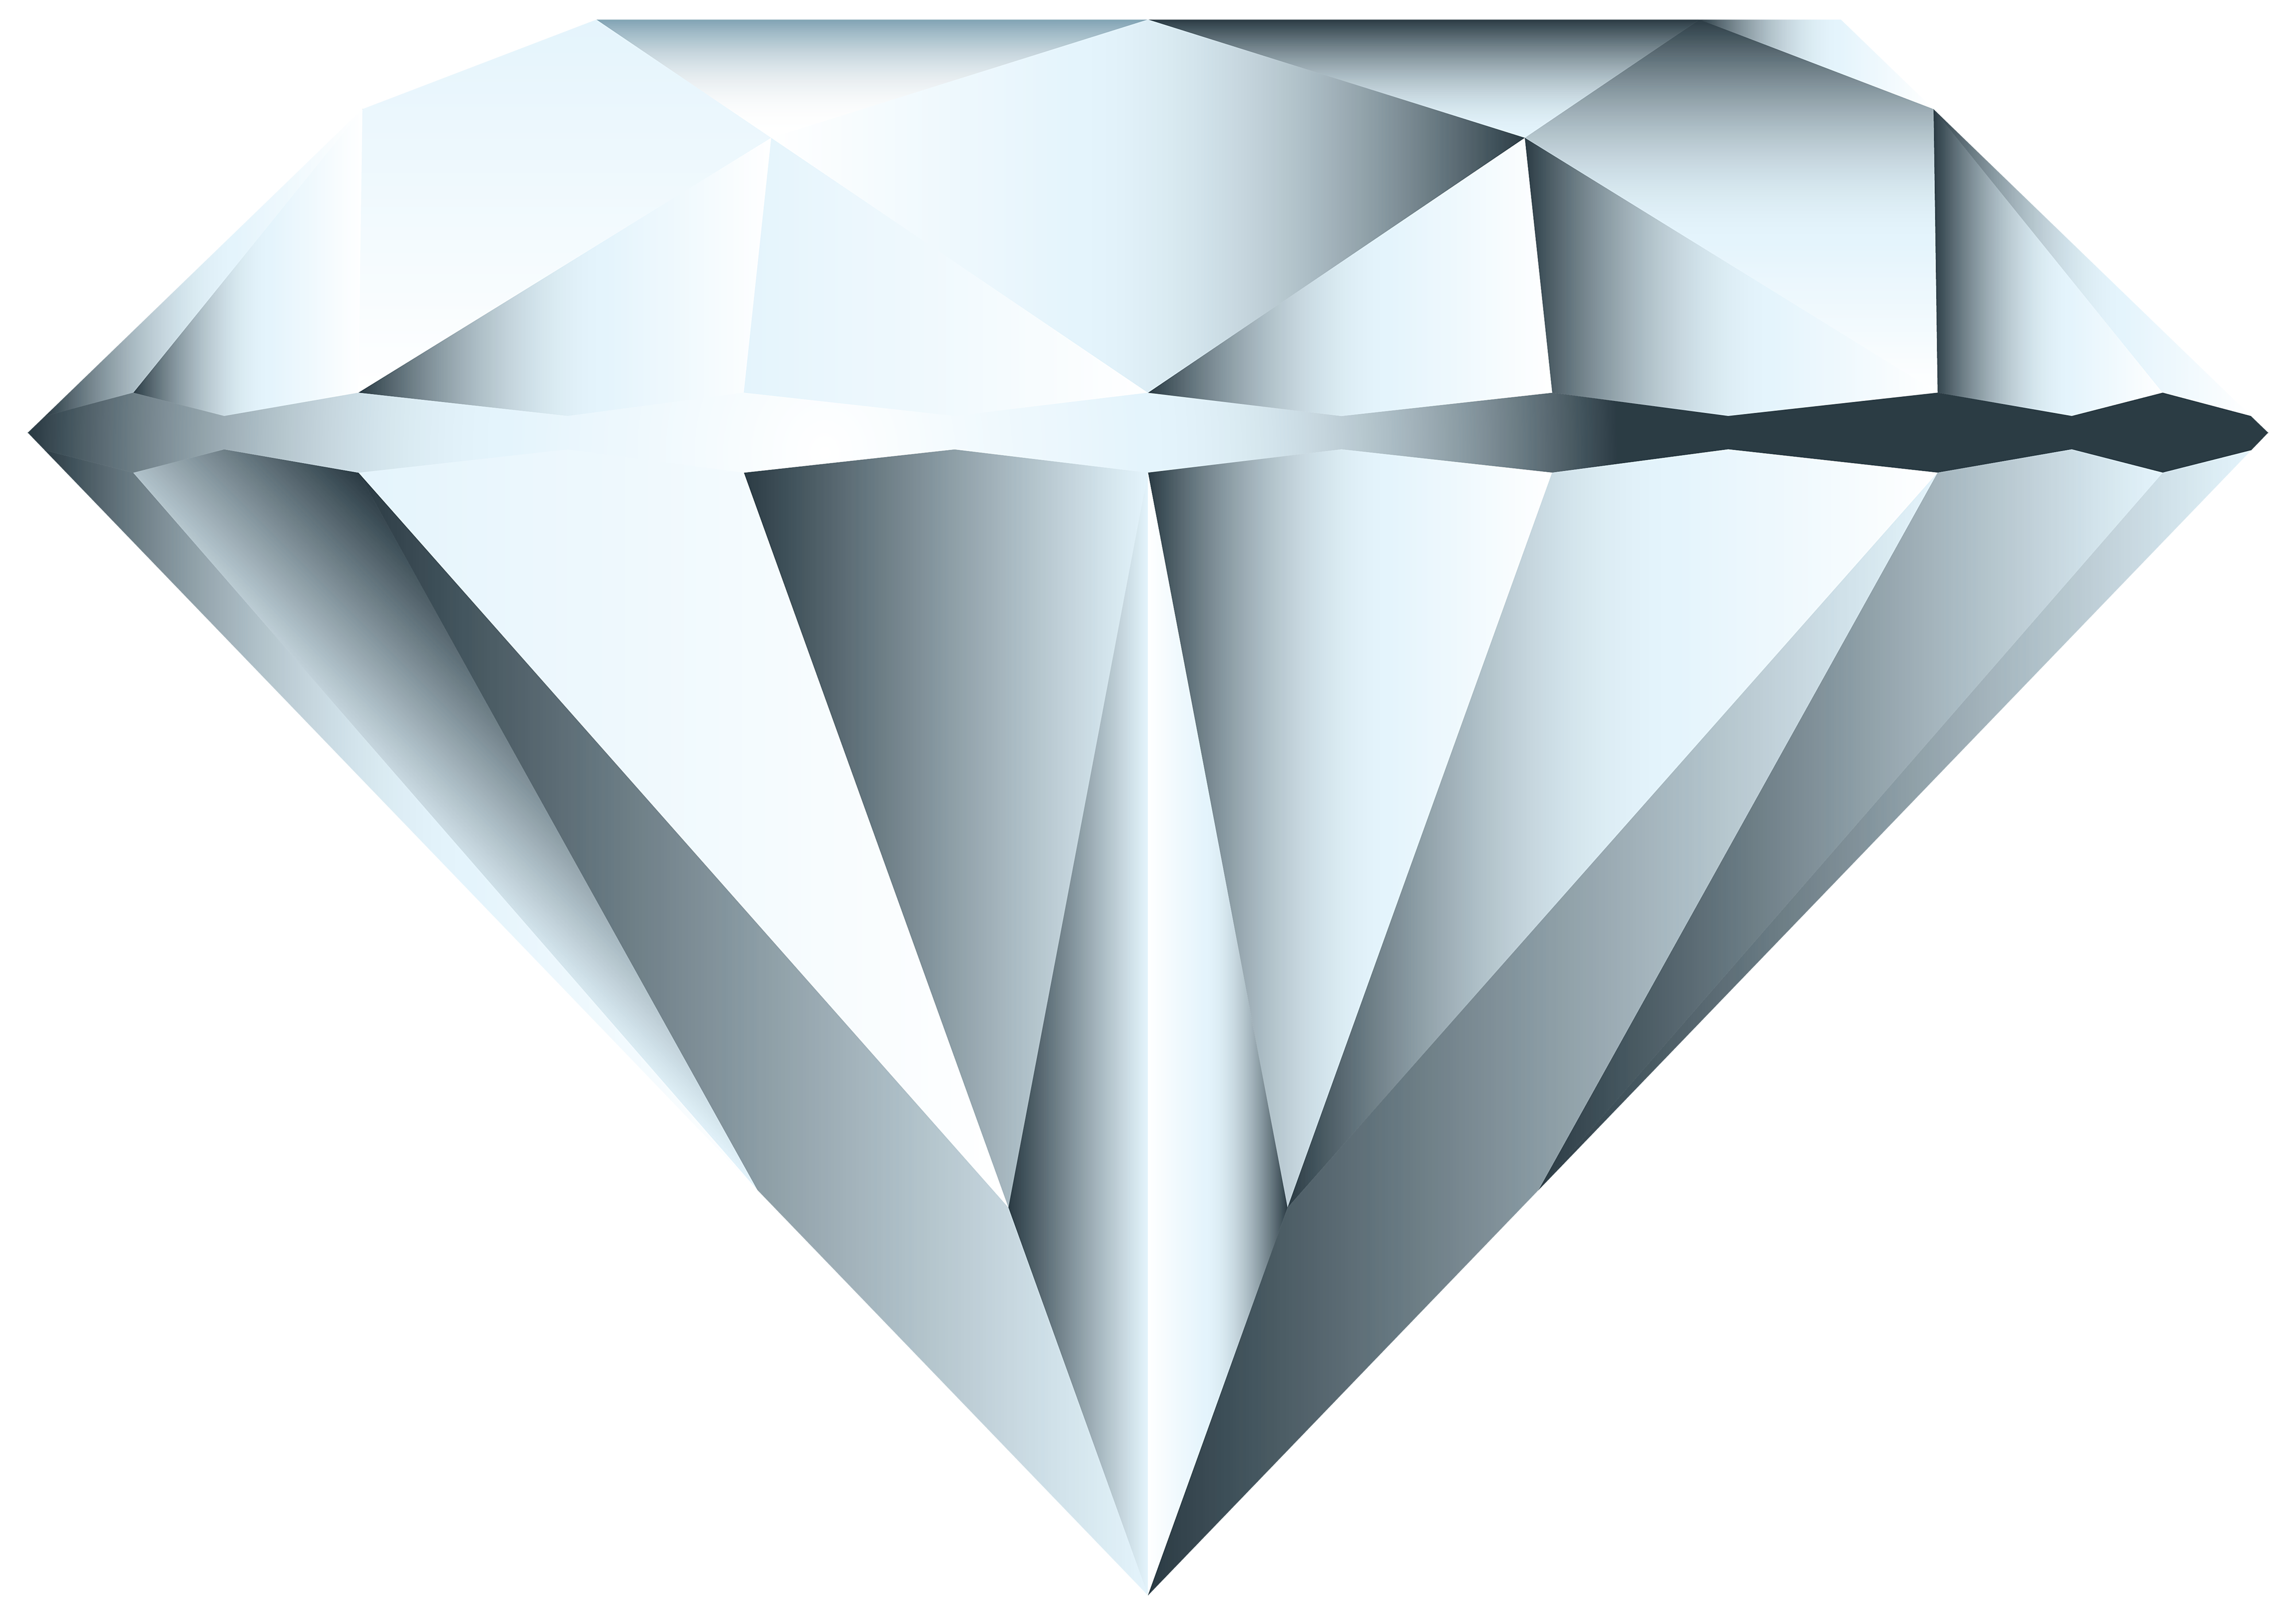 Big diamond clipart vector download Free Diamond Blue Cliparts, Download Free Clip Art, Free Clip Art on ... vector download